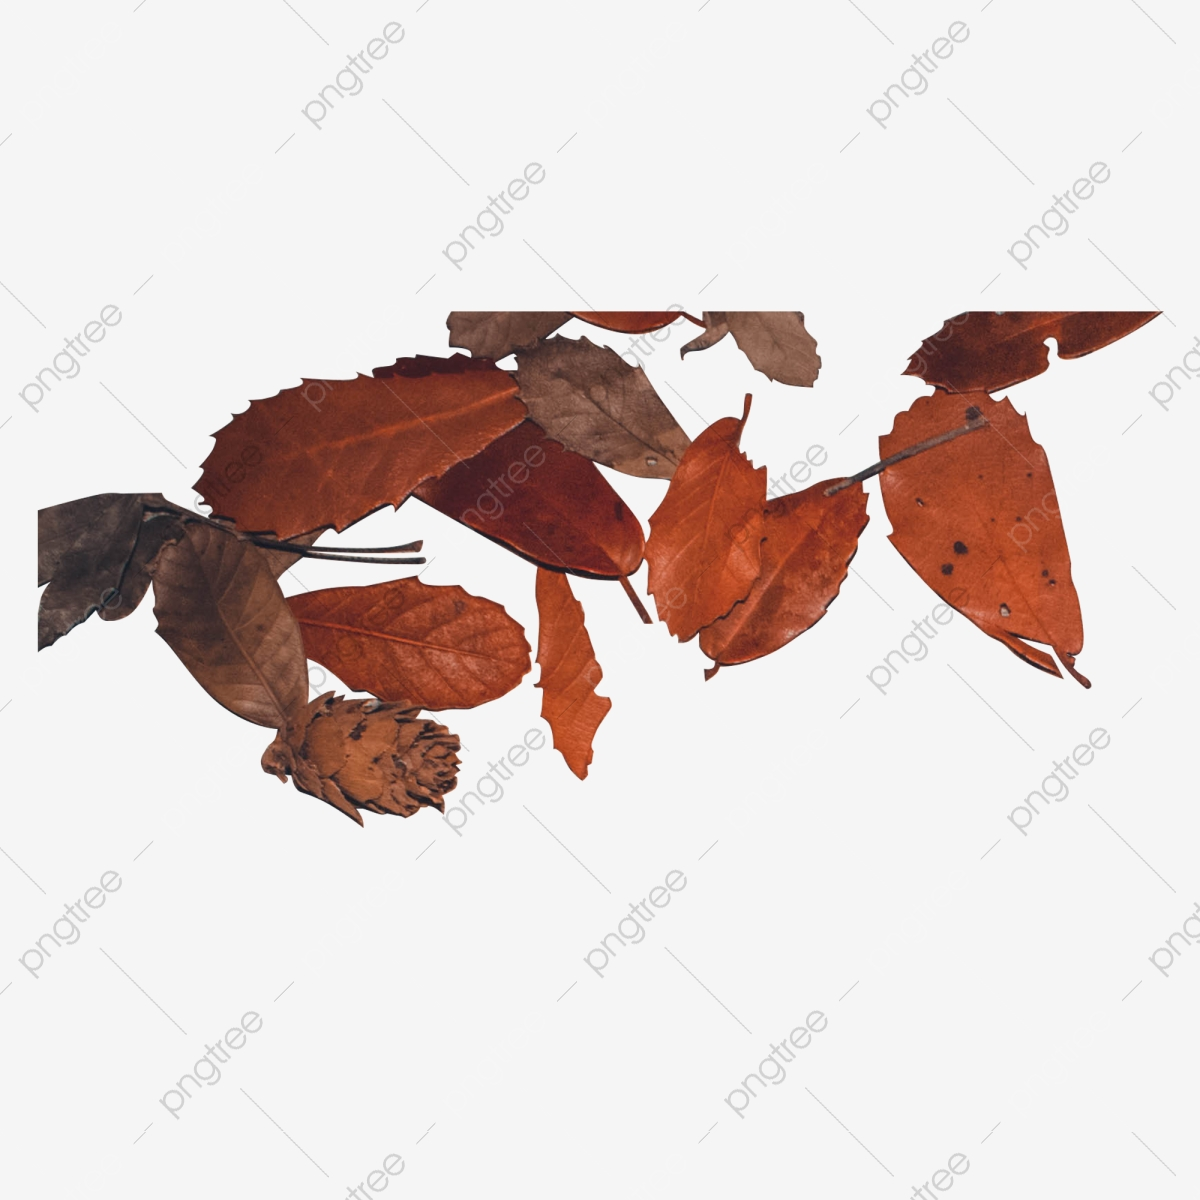 A Pile Of Red Falling Leaves Leaves Fallen Leaves Dead Leaves Png Transparent Clipart Image And Psd File For Free Download